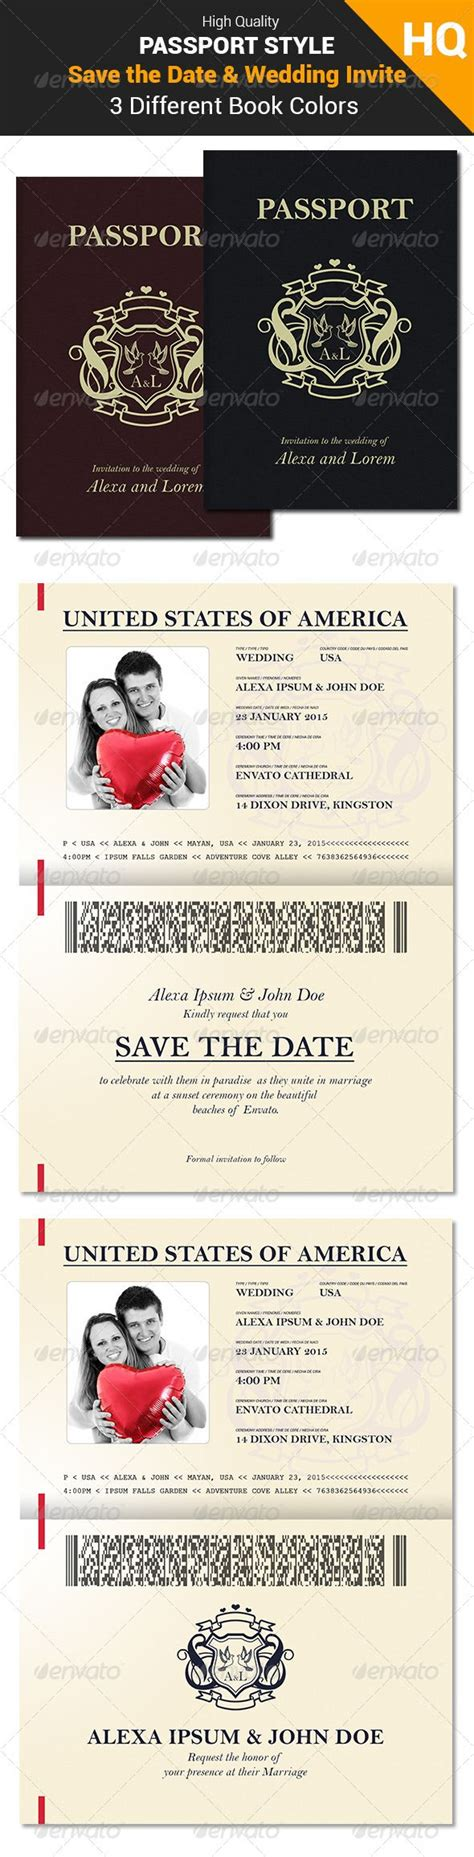 save the date passport template 17 best images about wedding invitations on